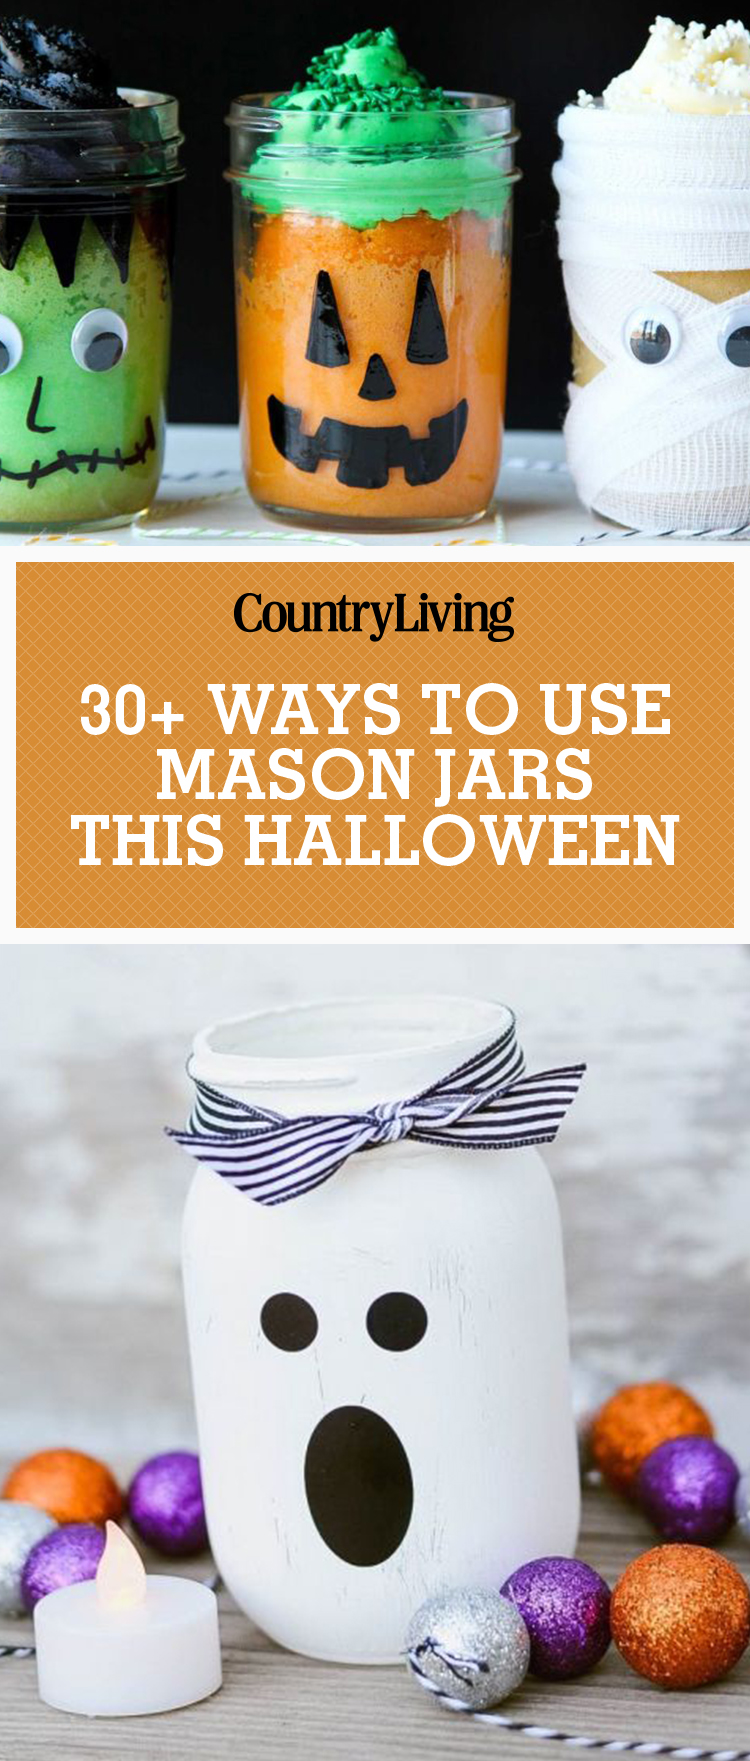 Uncategorized Decoration For Halloween Ideas 35 halloween mason jars craft ideas for using halloween